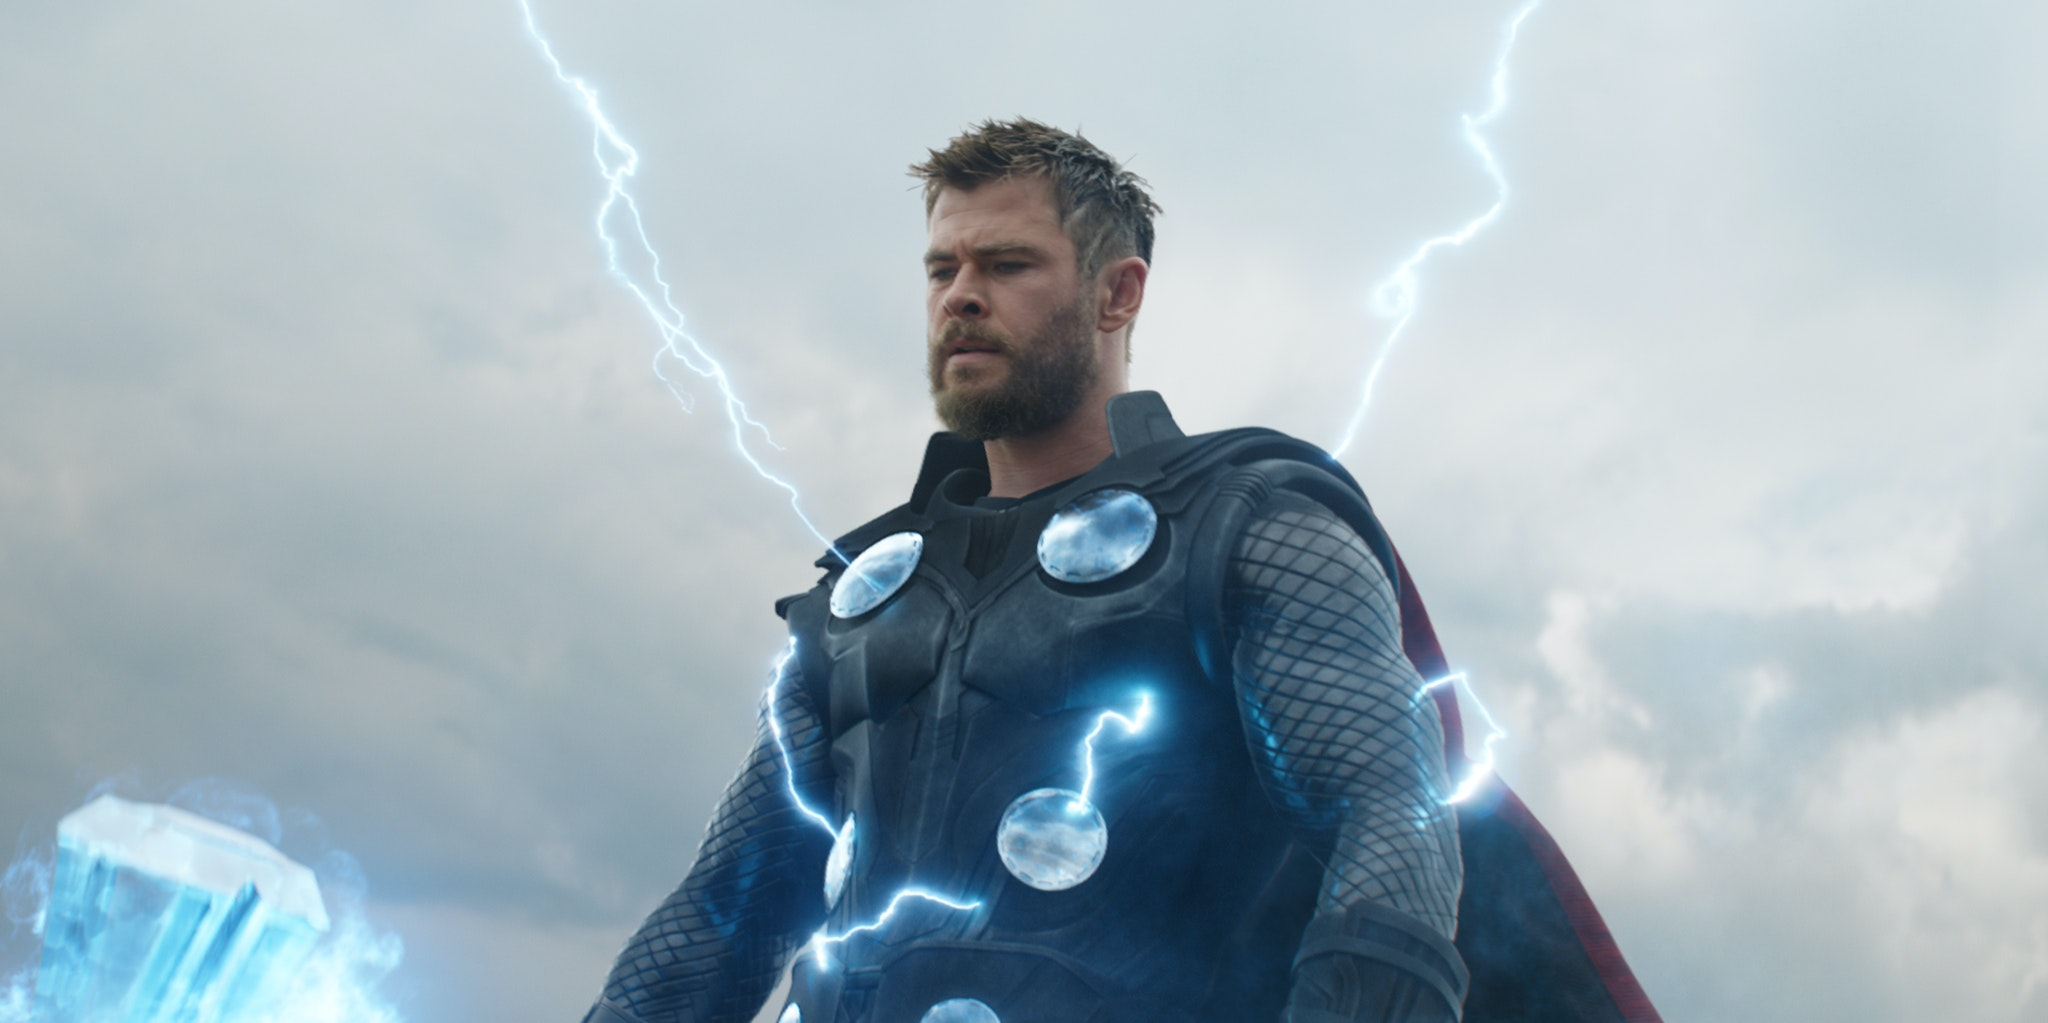 'Avengers: Endgame' Won't Have One Important MCU Character at All